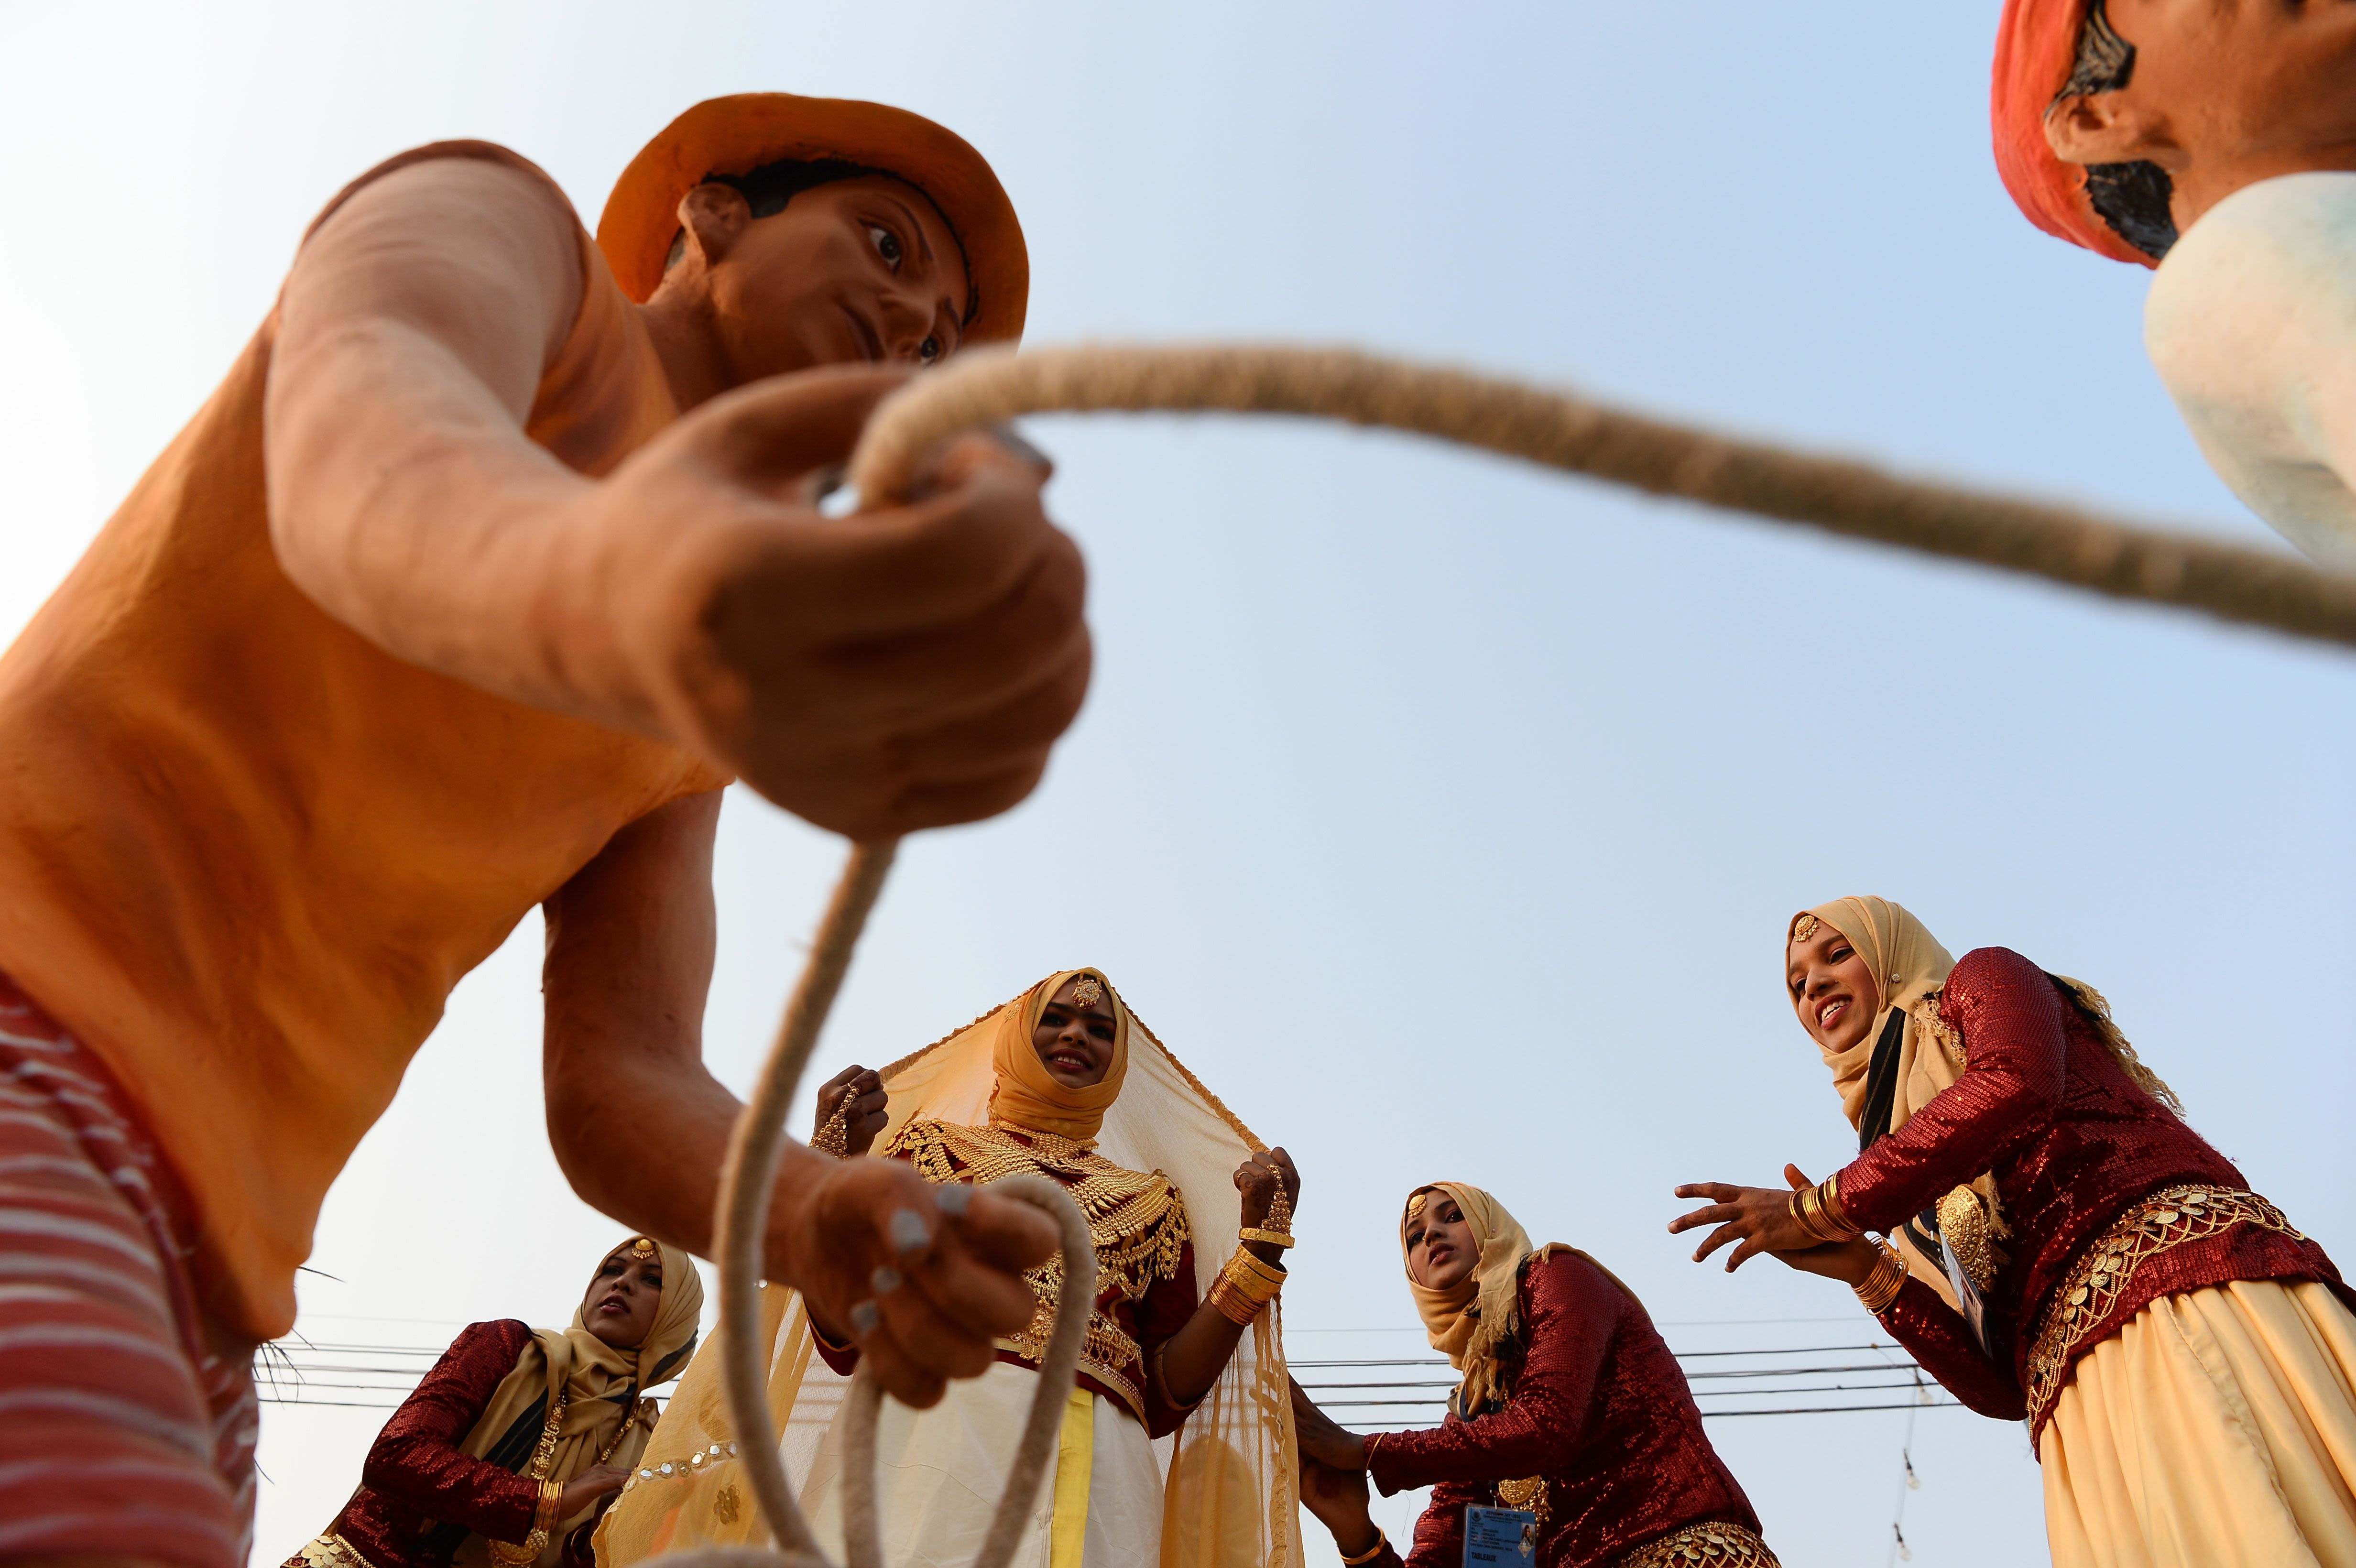 Artists from Lakshadweep perform during a press preview of floats participating in the forthcoming Republic Day parade in New Delhi on January 22, 2018. (SAJJAD HUSSAIN/AFP via Getty Images)